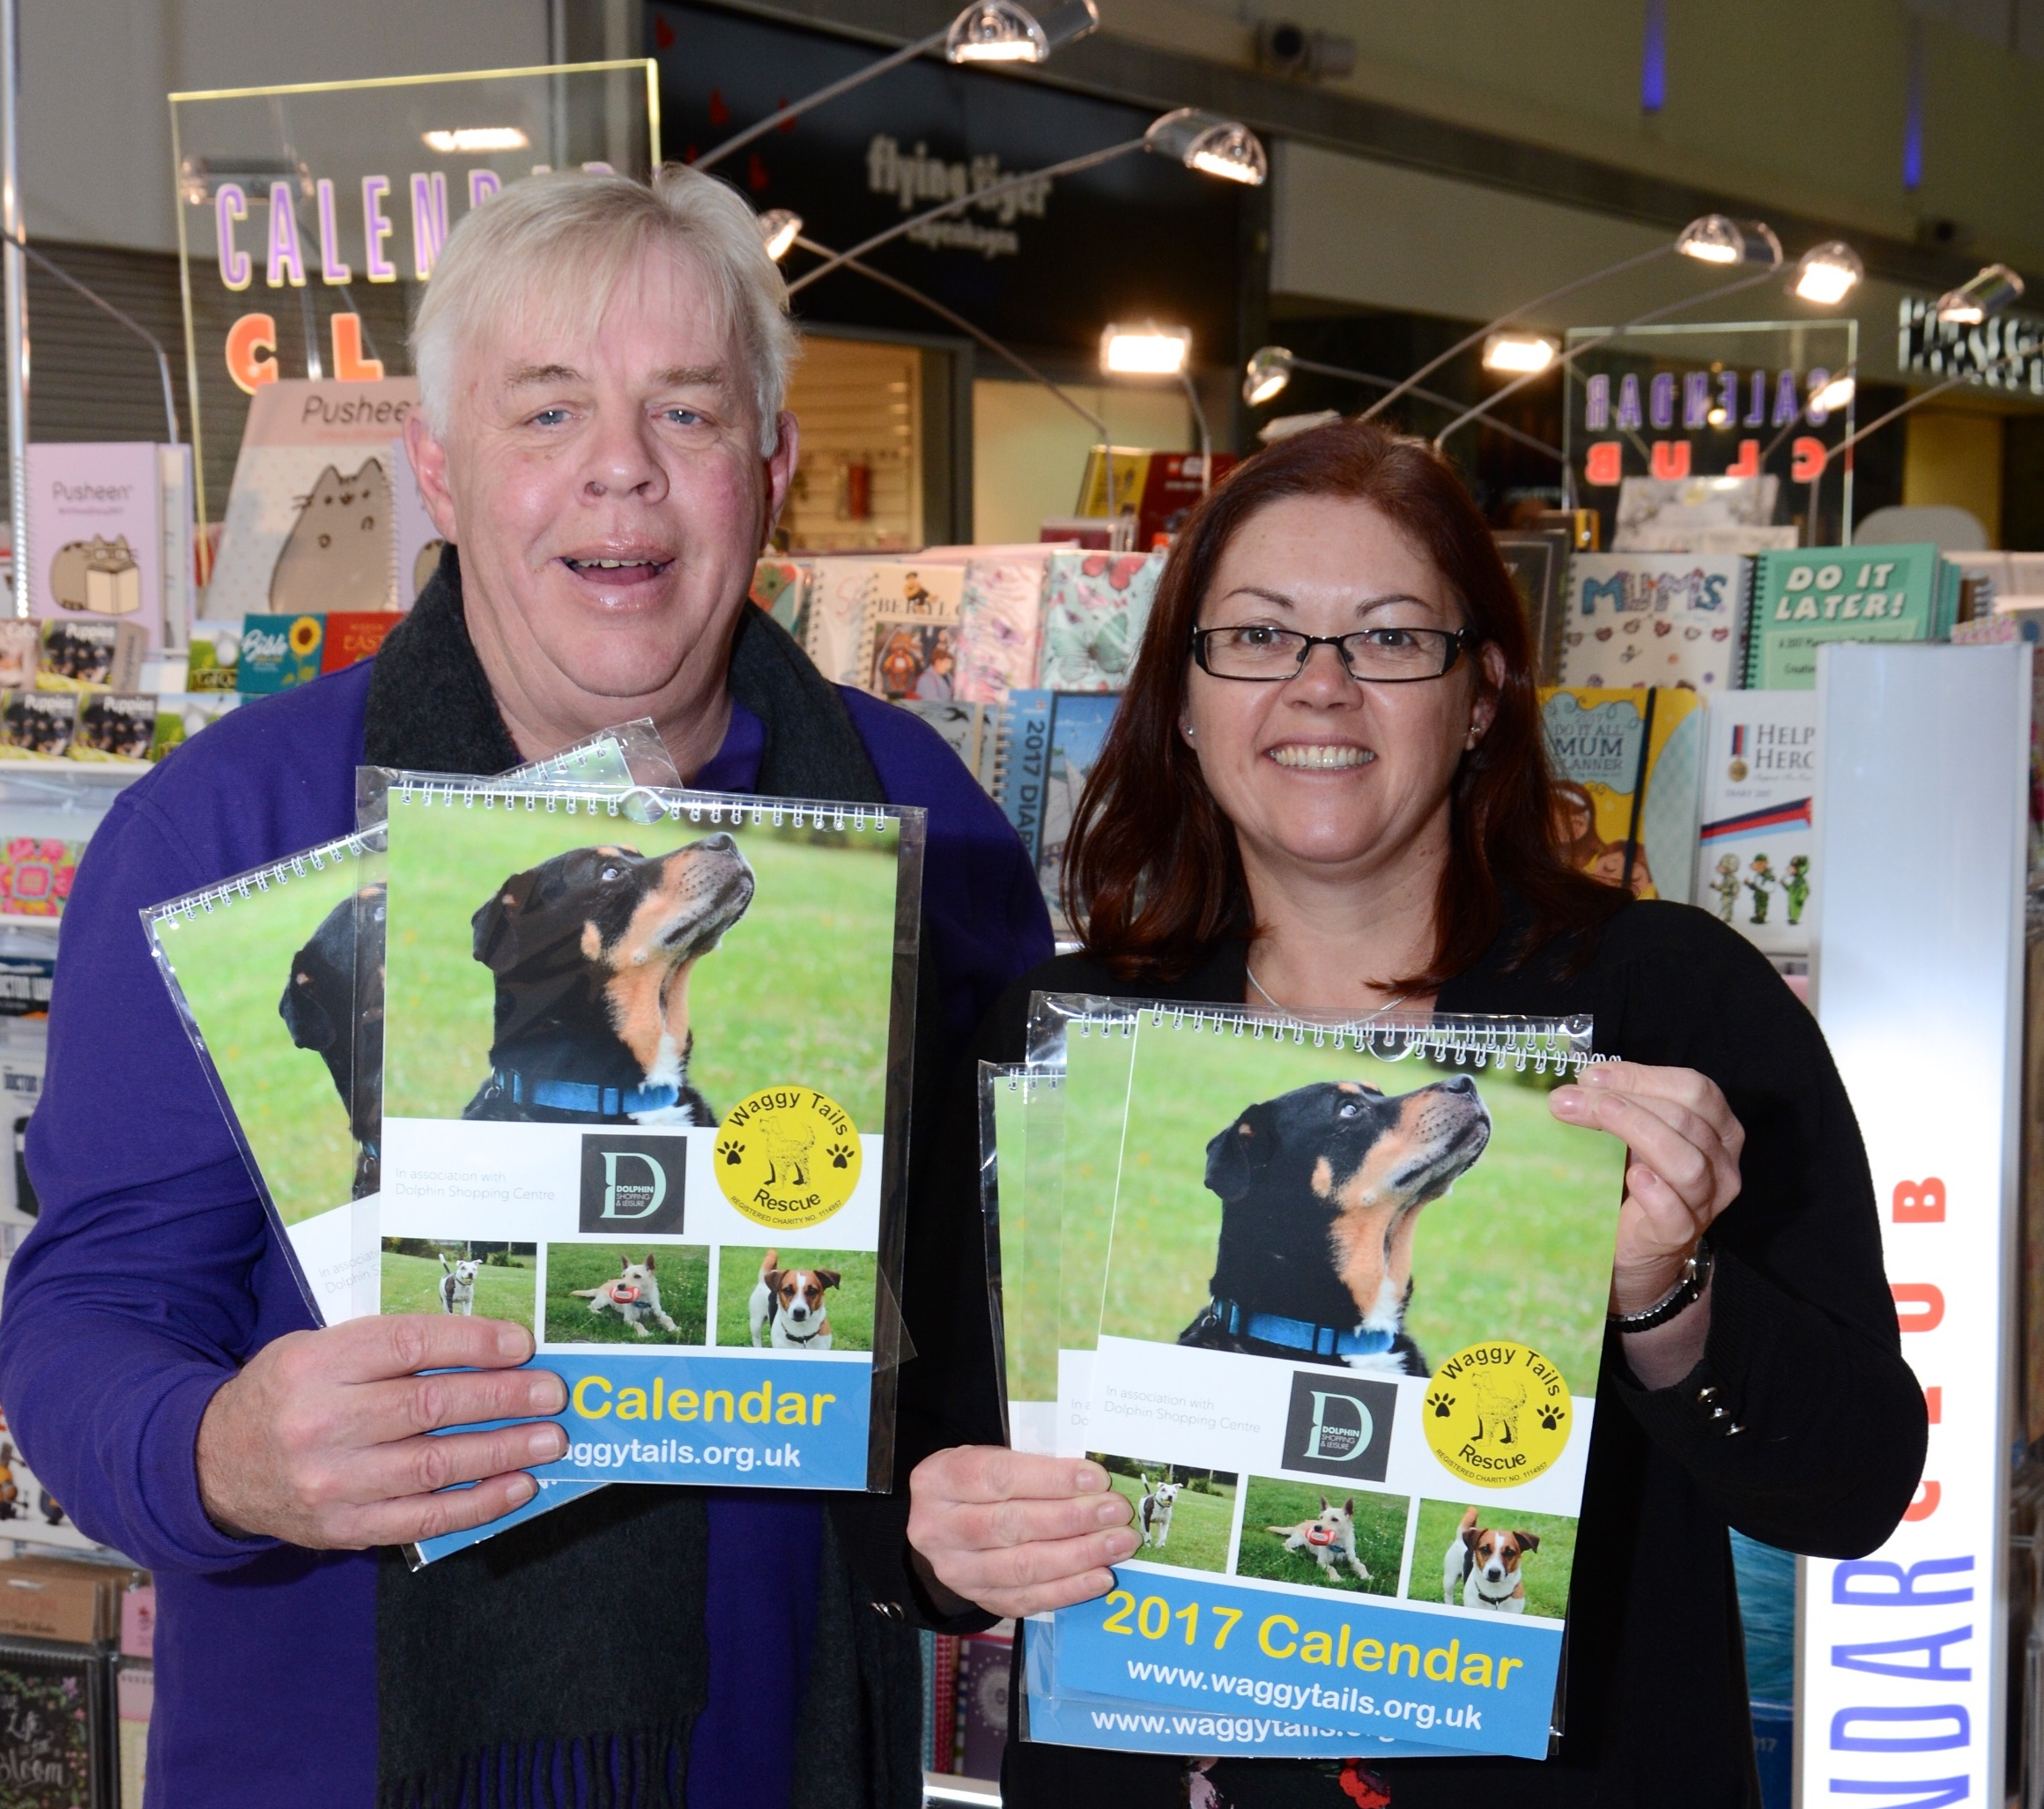 Paul Chapman of Waggy Tails Rescue and Lisa King of the Dolphin Shopping Centre